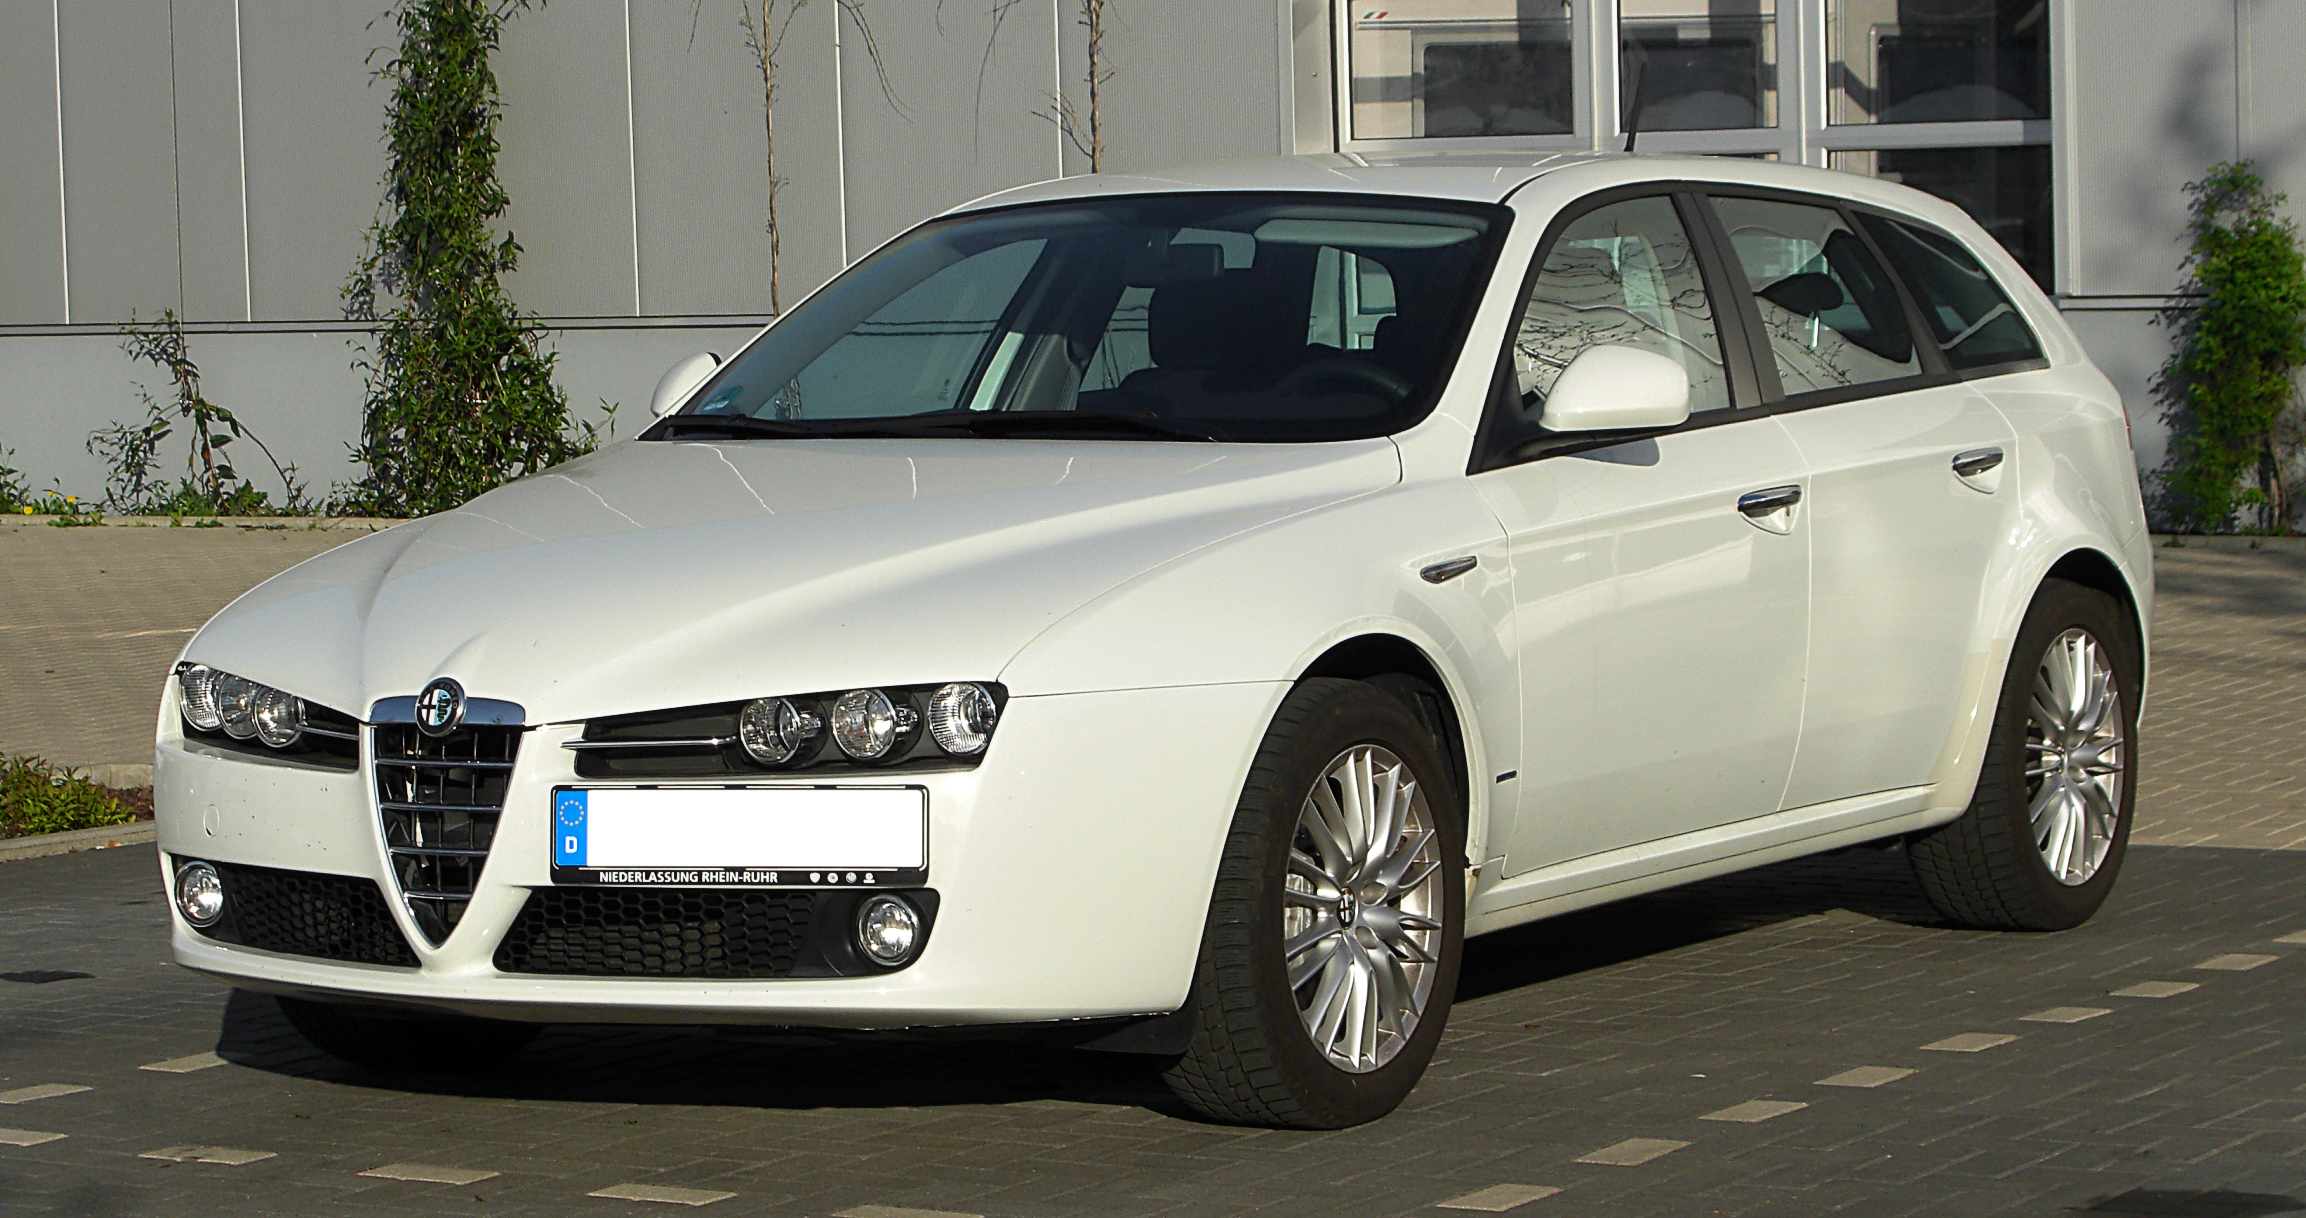 2014 alfa romeo 159 sportwagon pictures information and. Black Bedroom Furniture Sets. Home Design Ideas